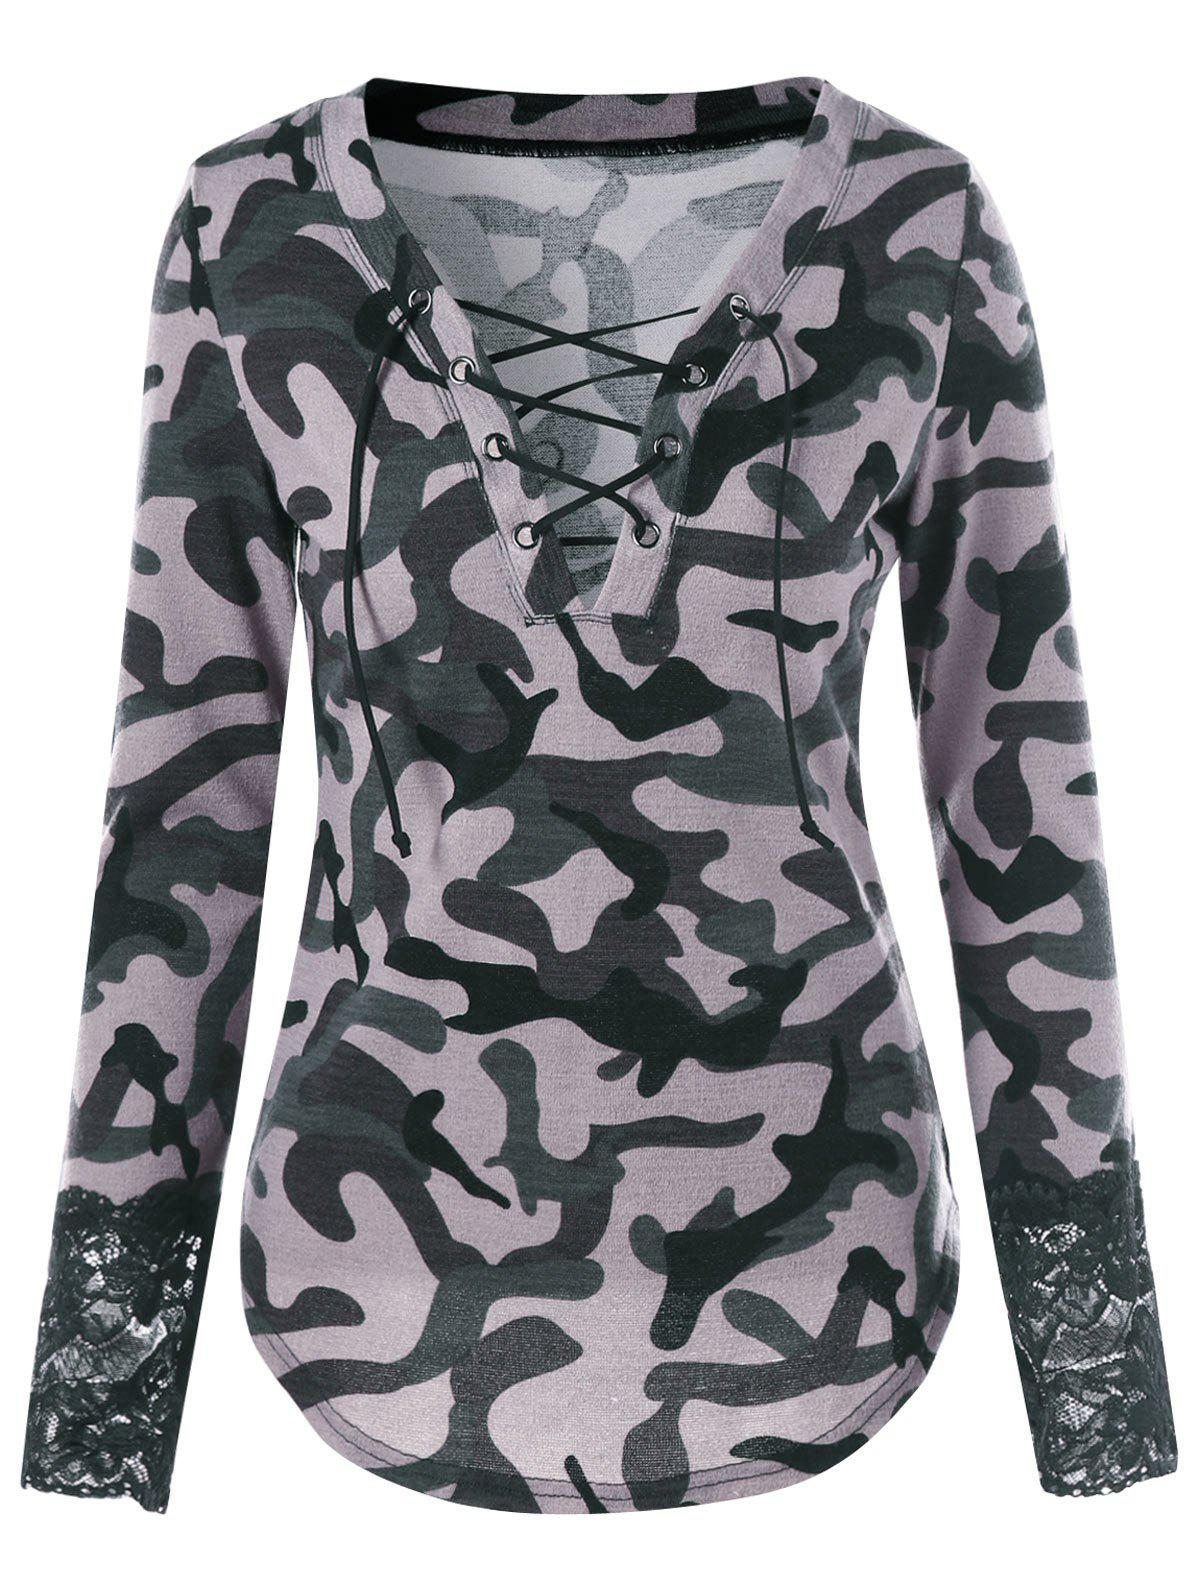 Lace Up Camouflage Lace Panel T-shirt camouflage lace up t shirt